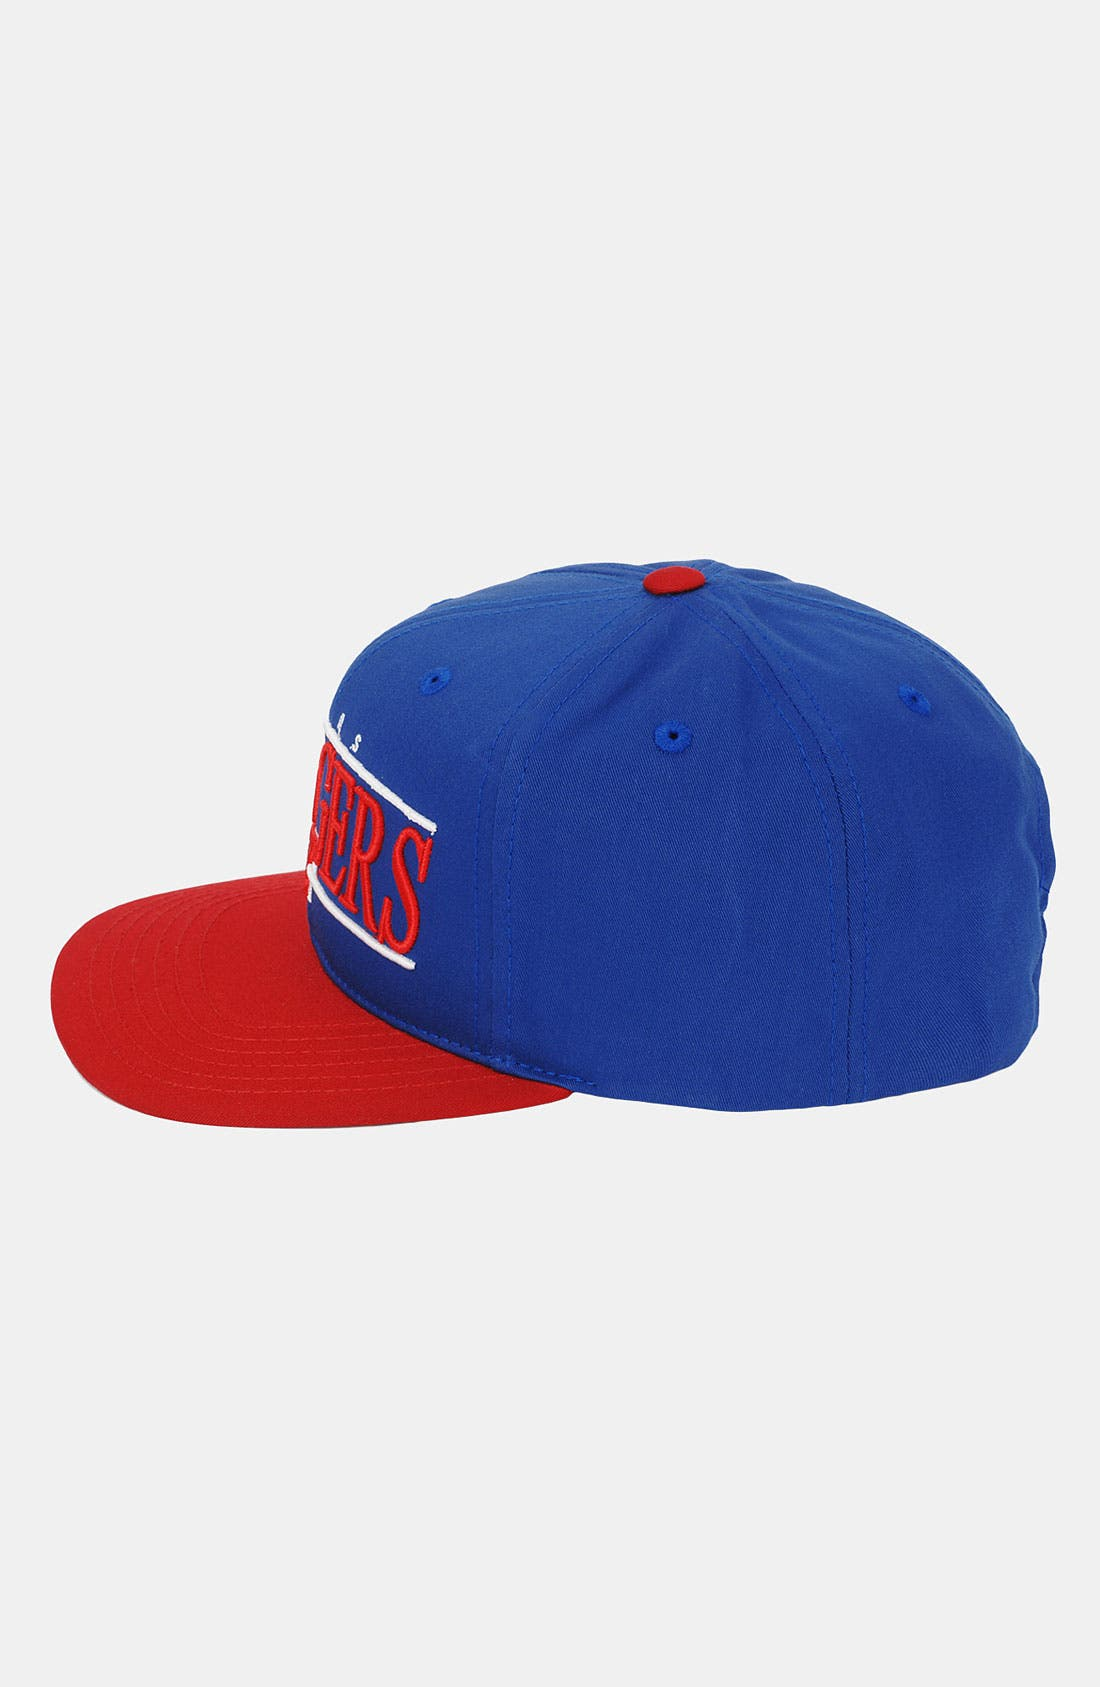 Alternate Image 3  - American Needle 'Texas Rangers - Nineties' Twill Snapback Baseball Cap